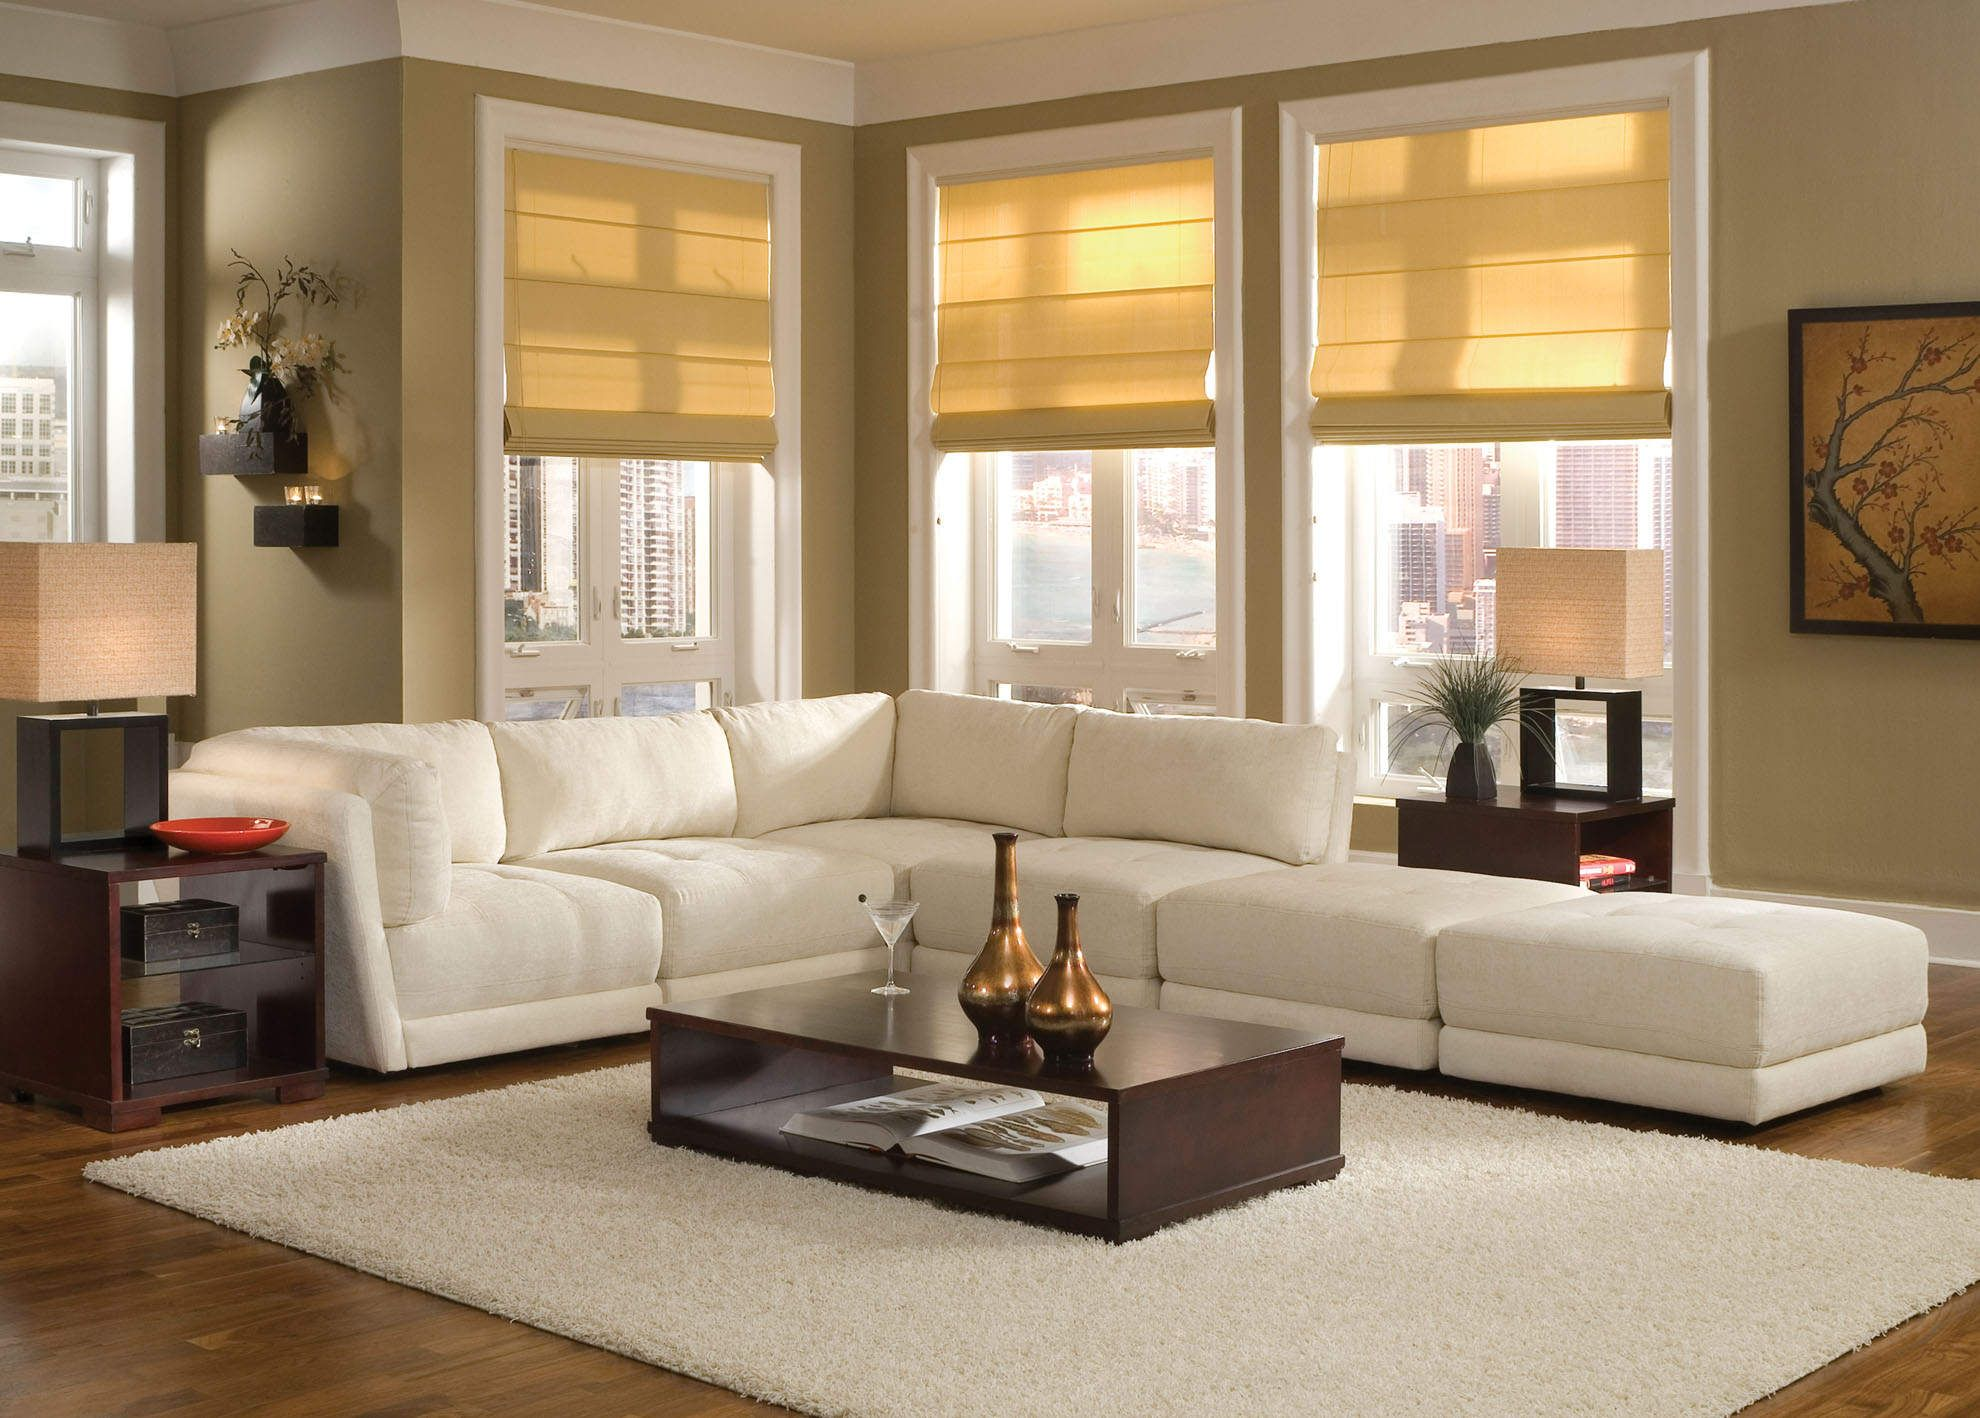 Cool Carpet Ideas Amazing White Comfortable Long Sofas With Thick Home Inspiration Small Living Room